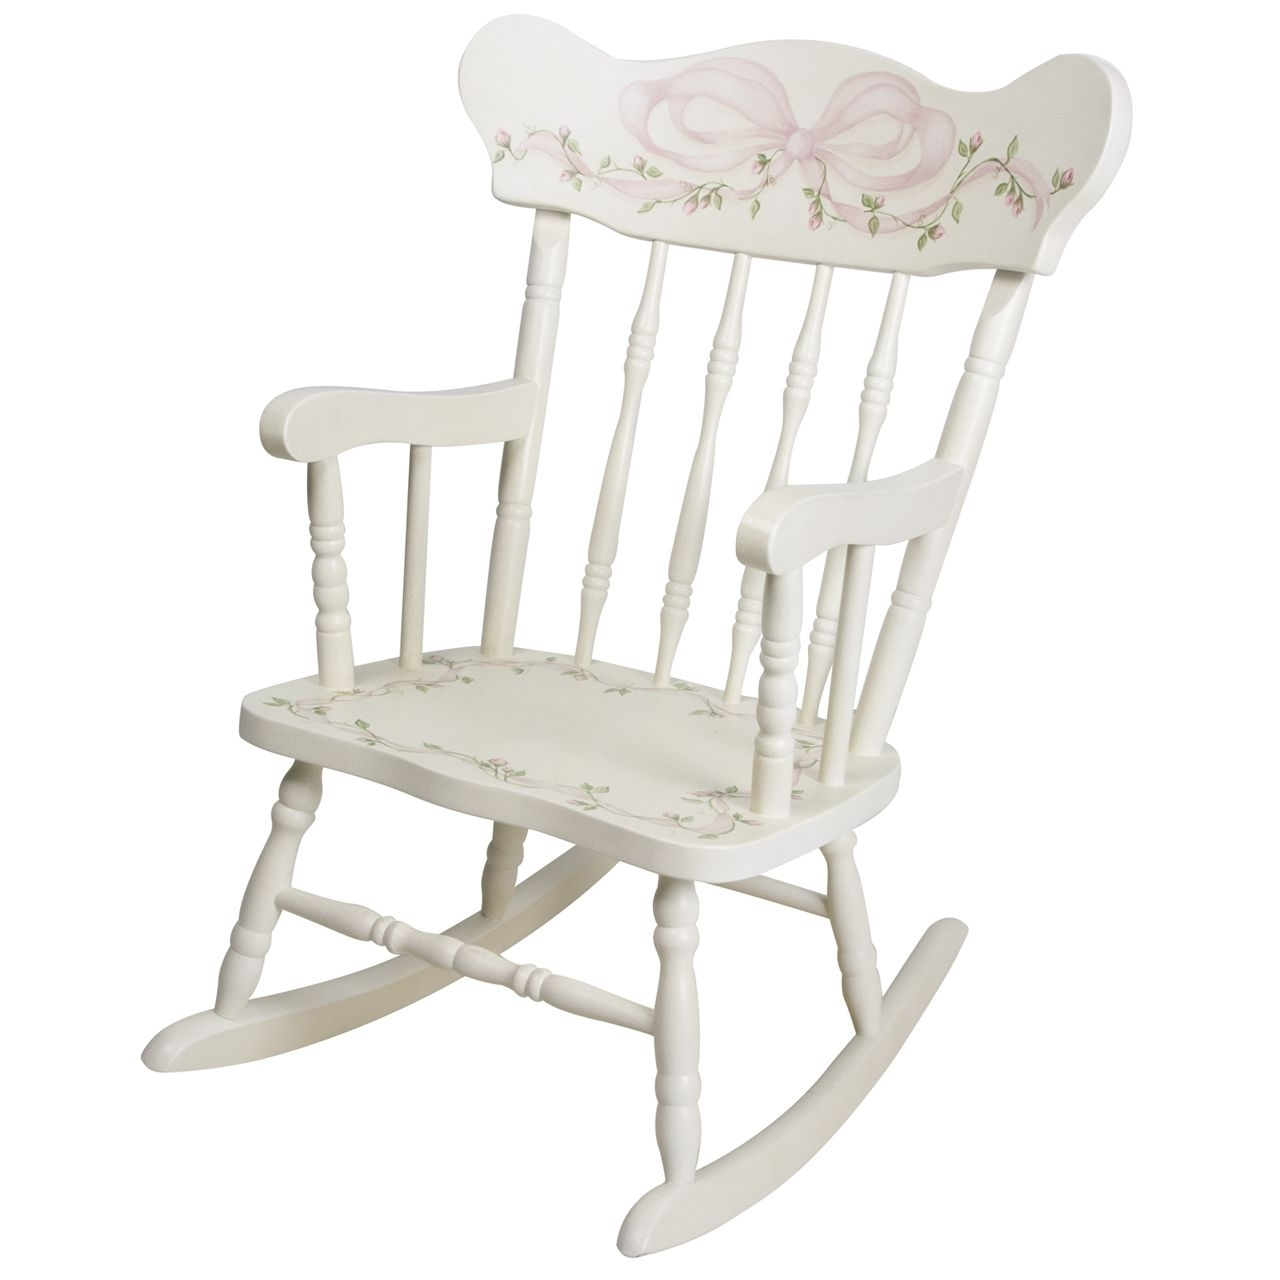 Rocking Chairs At Roses With Regard To Popular Afk Furniture – Child's Rocking Chair Ribbons And Roses, $ (View 11 of 15)